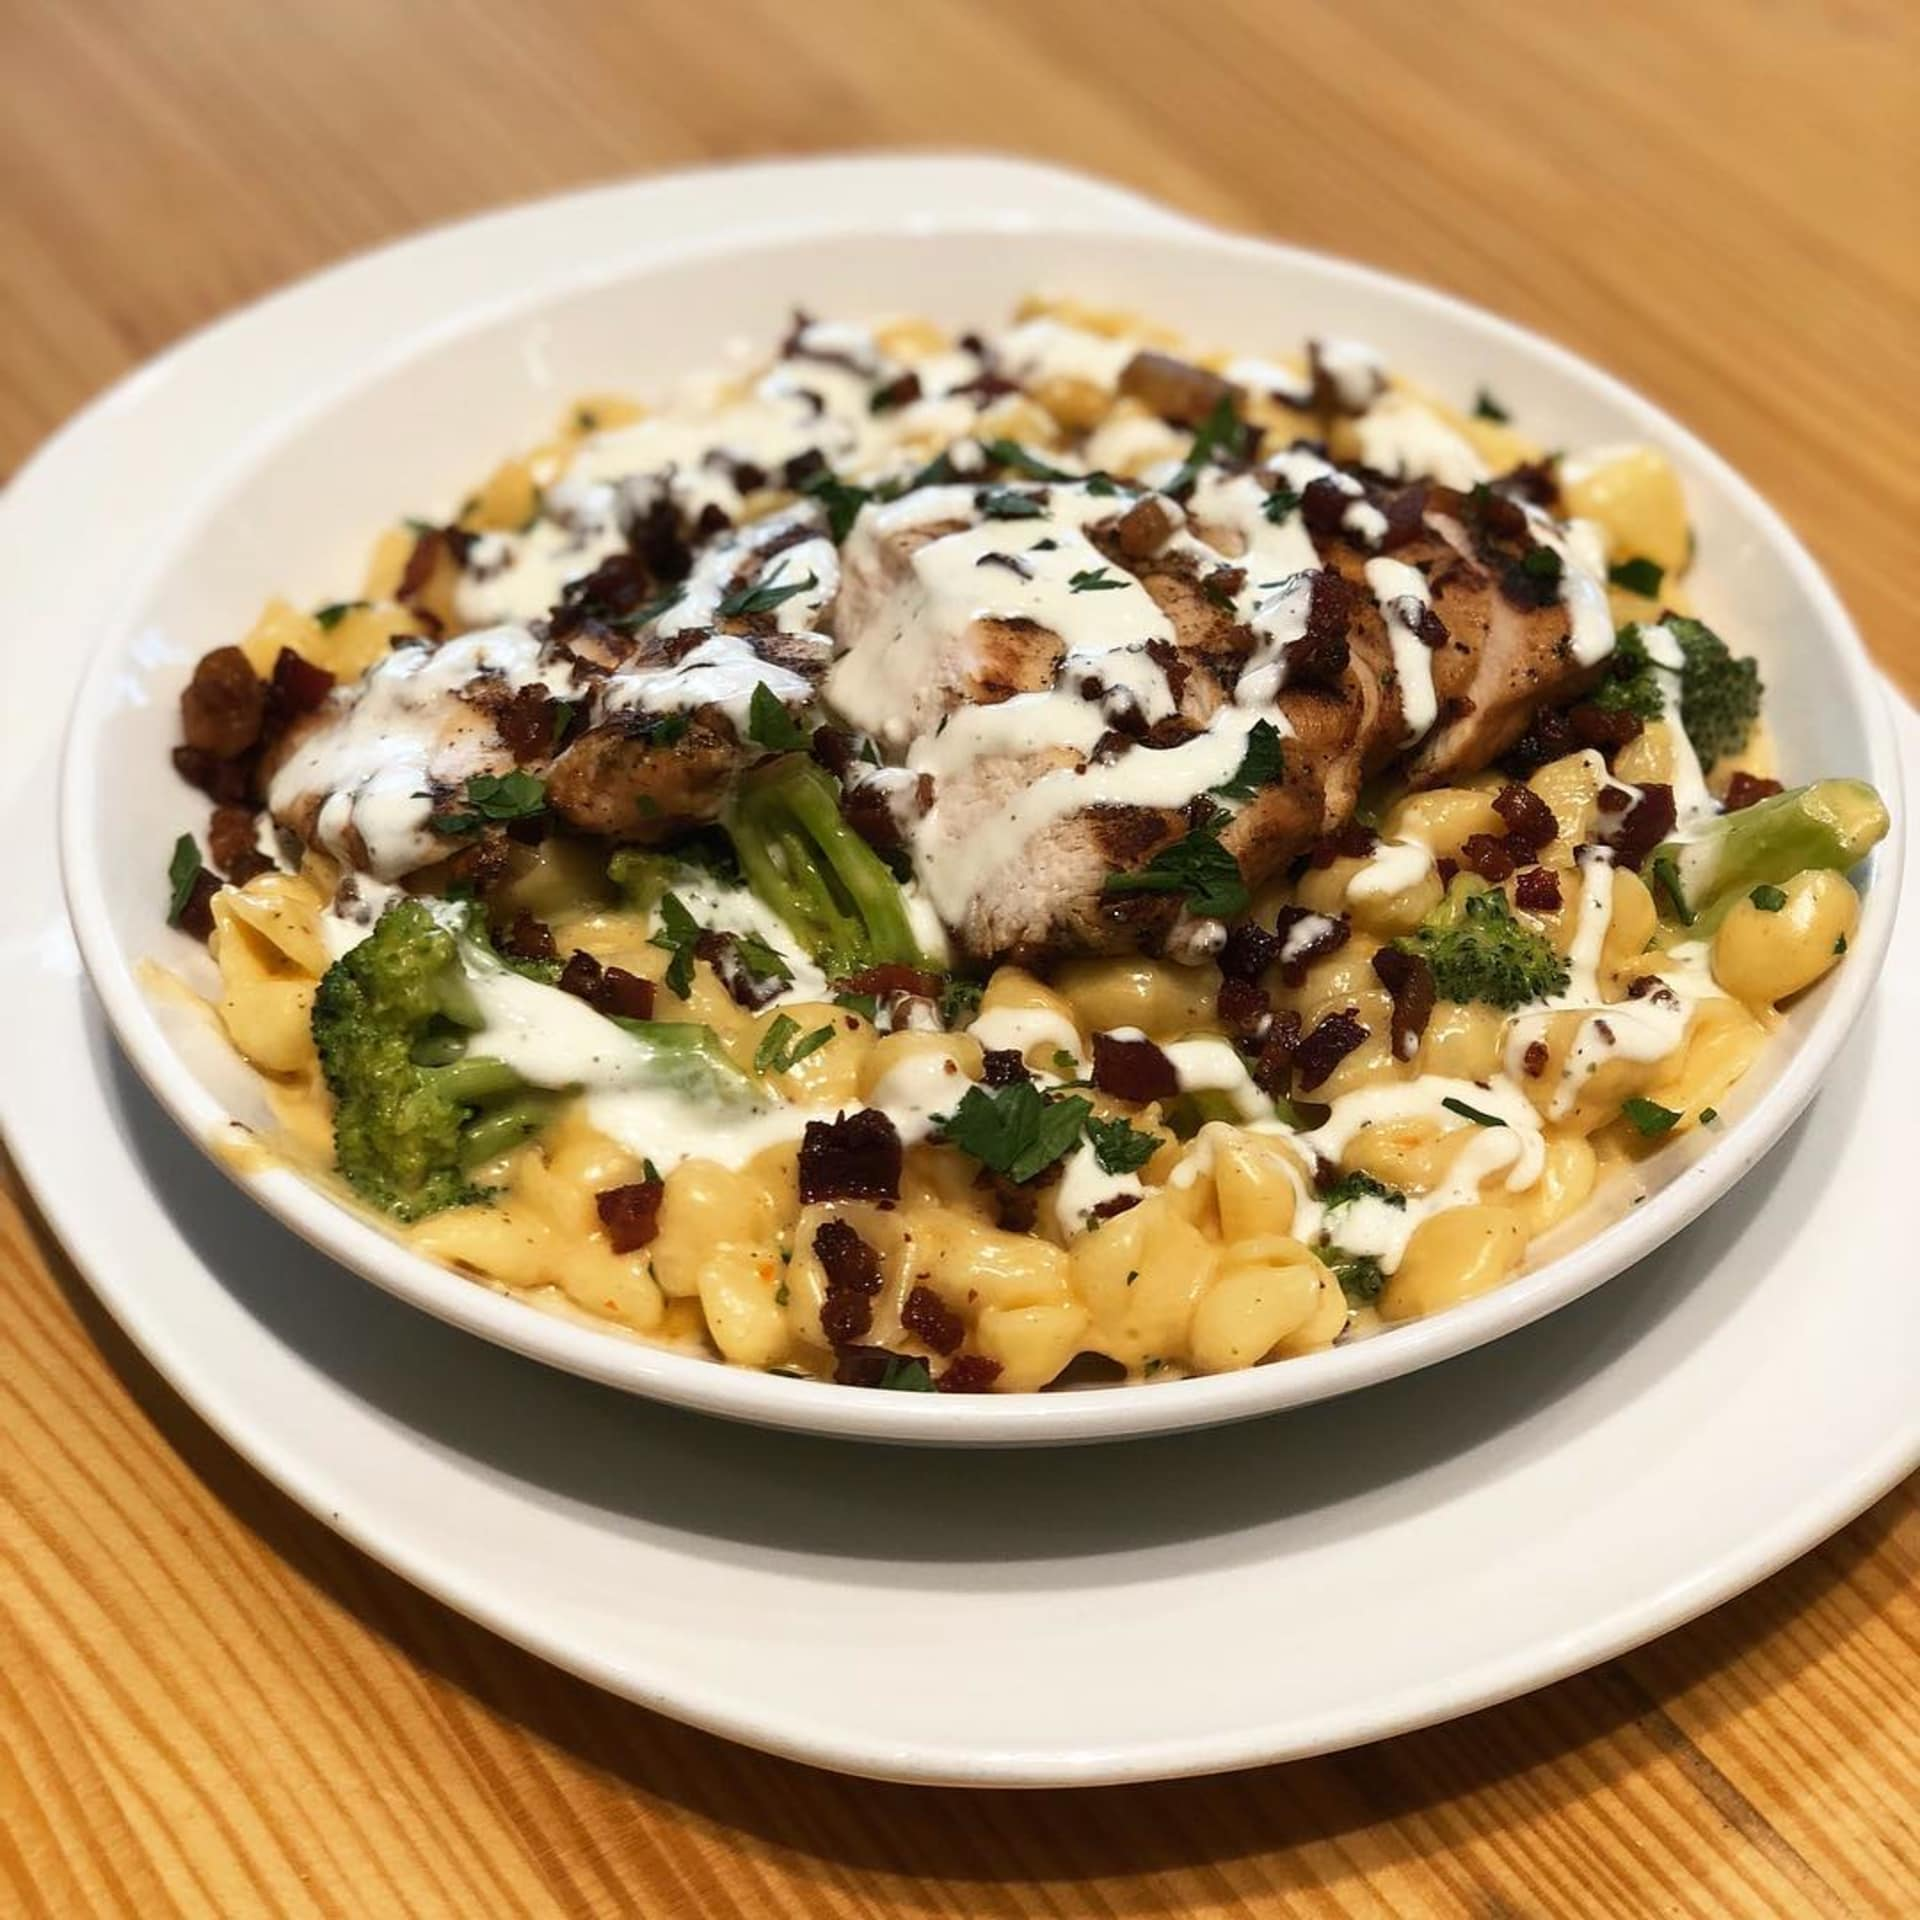 Tuesday- Trivia, Build Your Own Mac and Cheese Night & JukeVision Free Play